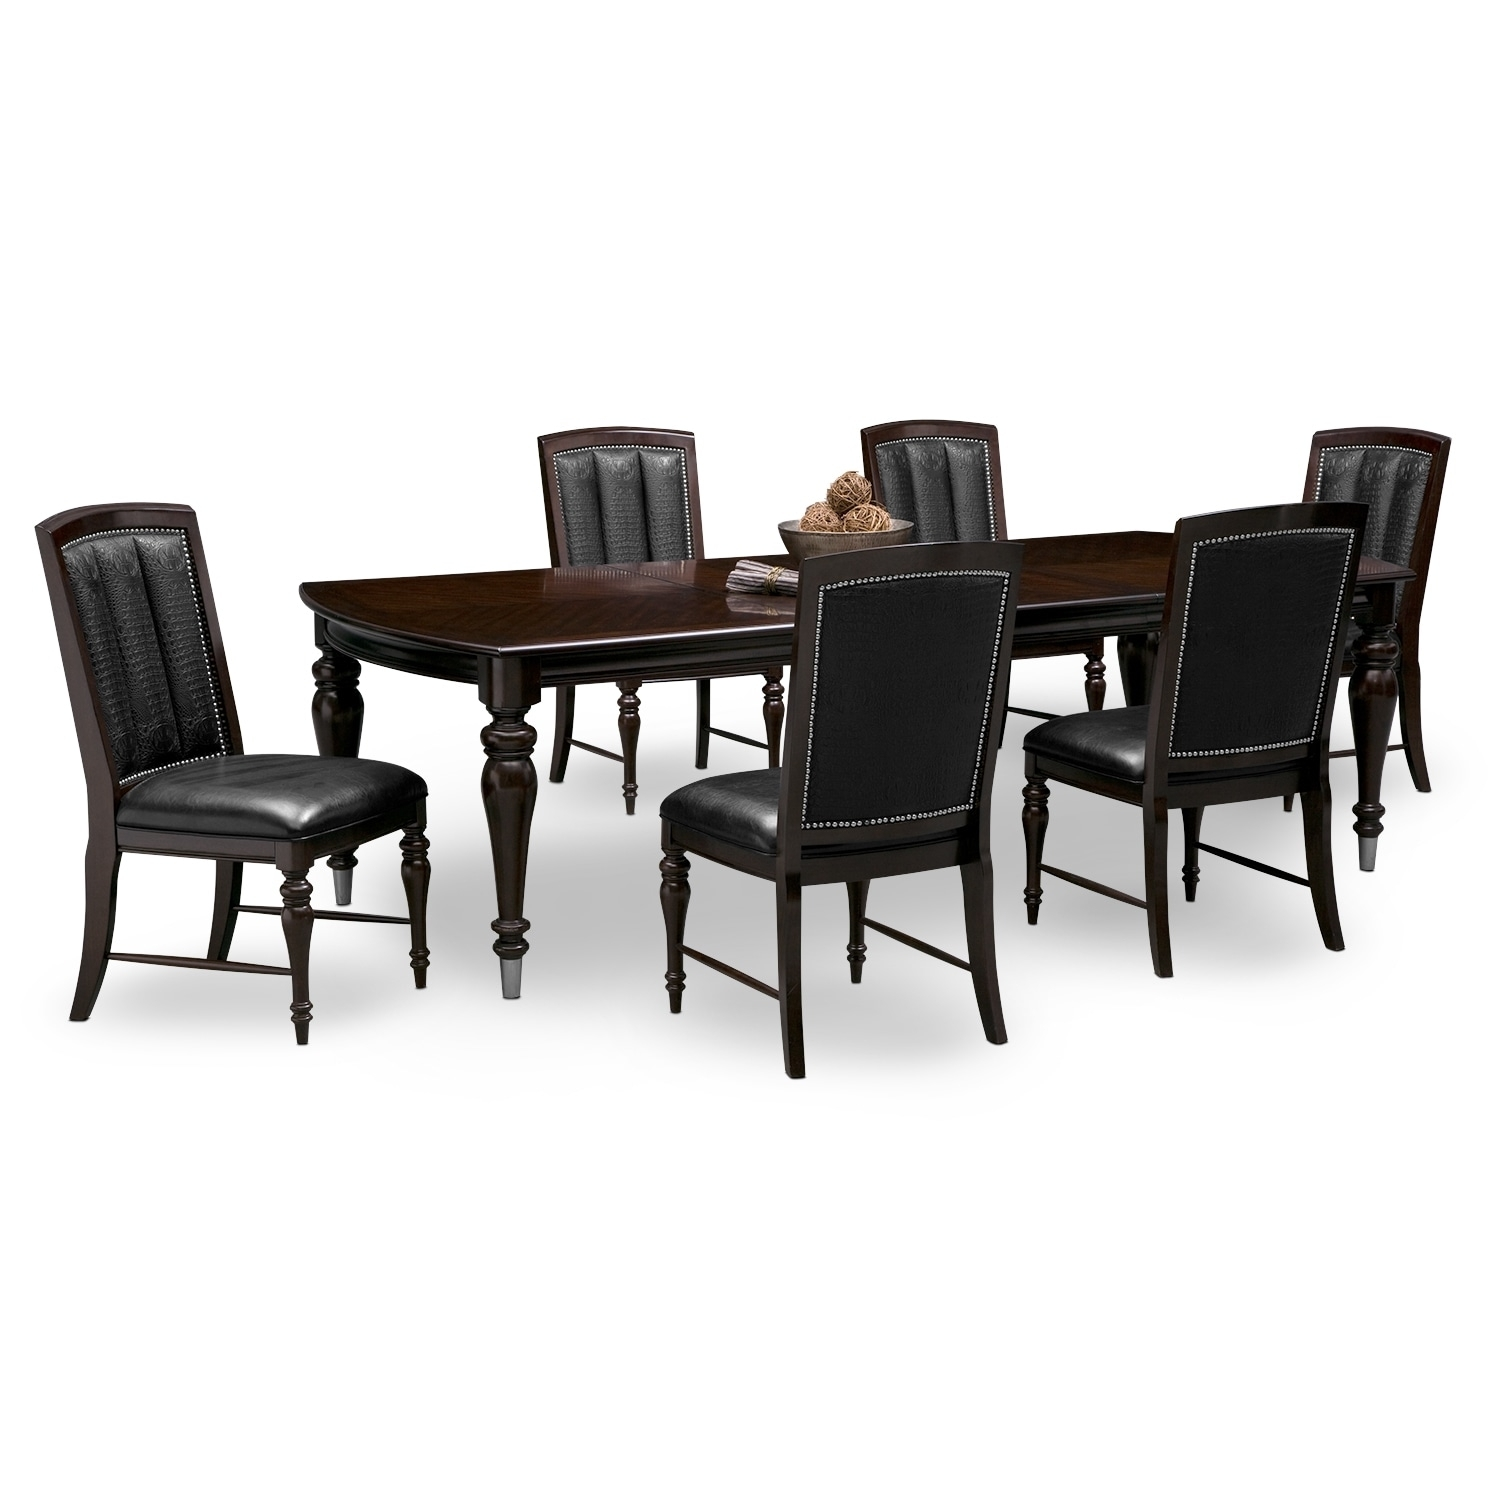 Dining Room Furniture | American Signature Throughout Current Market 6 Piece Dining Sets With Host And Side Chairs (Photo 16 of 20)